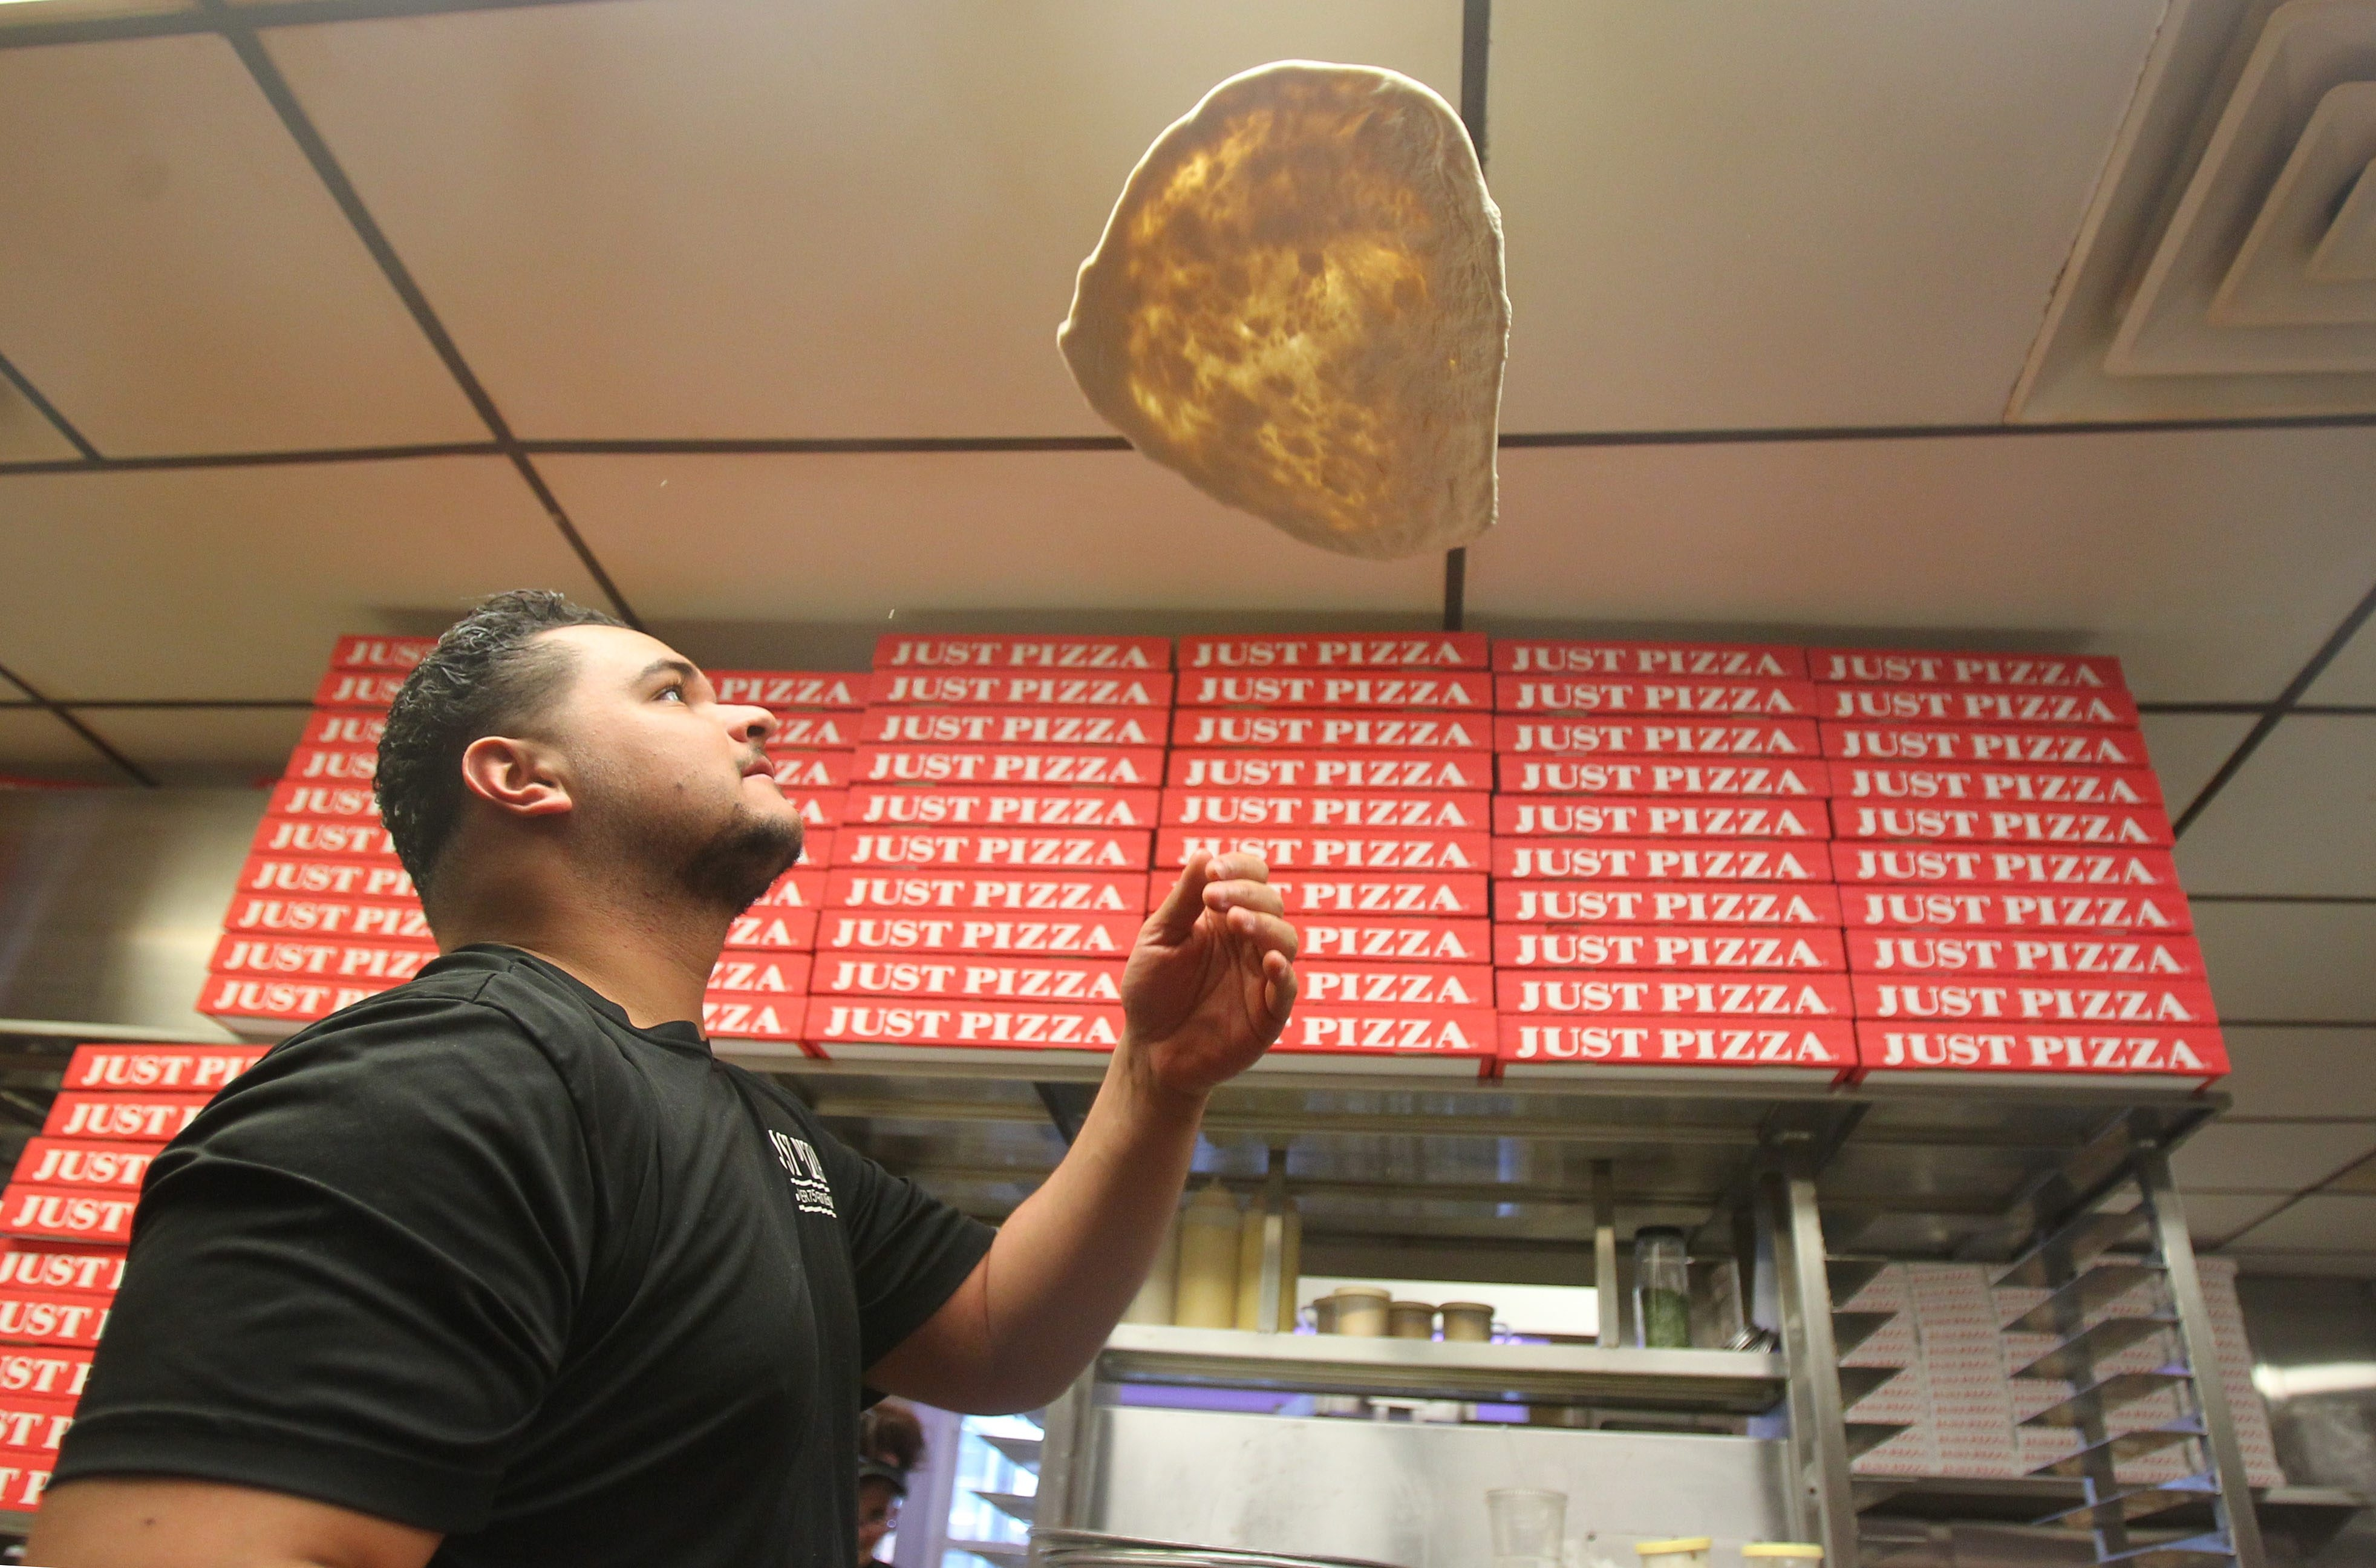 Rudy Alloy III throws some dough for a New York style pizza Friday at Just Pizza on Elmwood Avenue. Come Sunday, the restaurant expects to go through 50 gallons of pizza sauce and 1,800 pounds of mozzarella cheese.